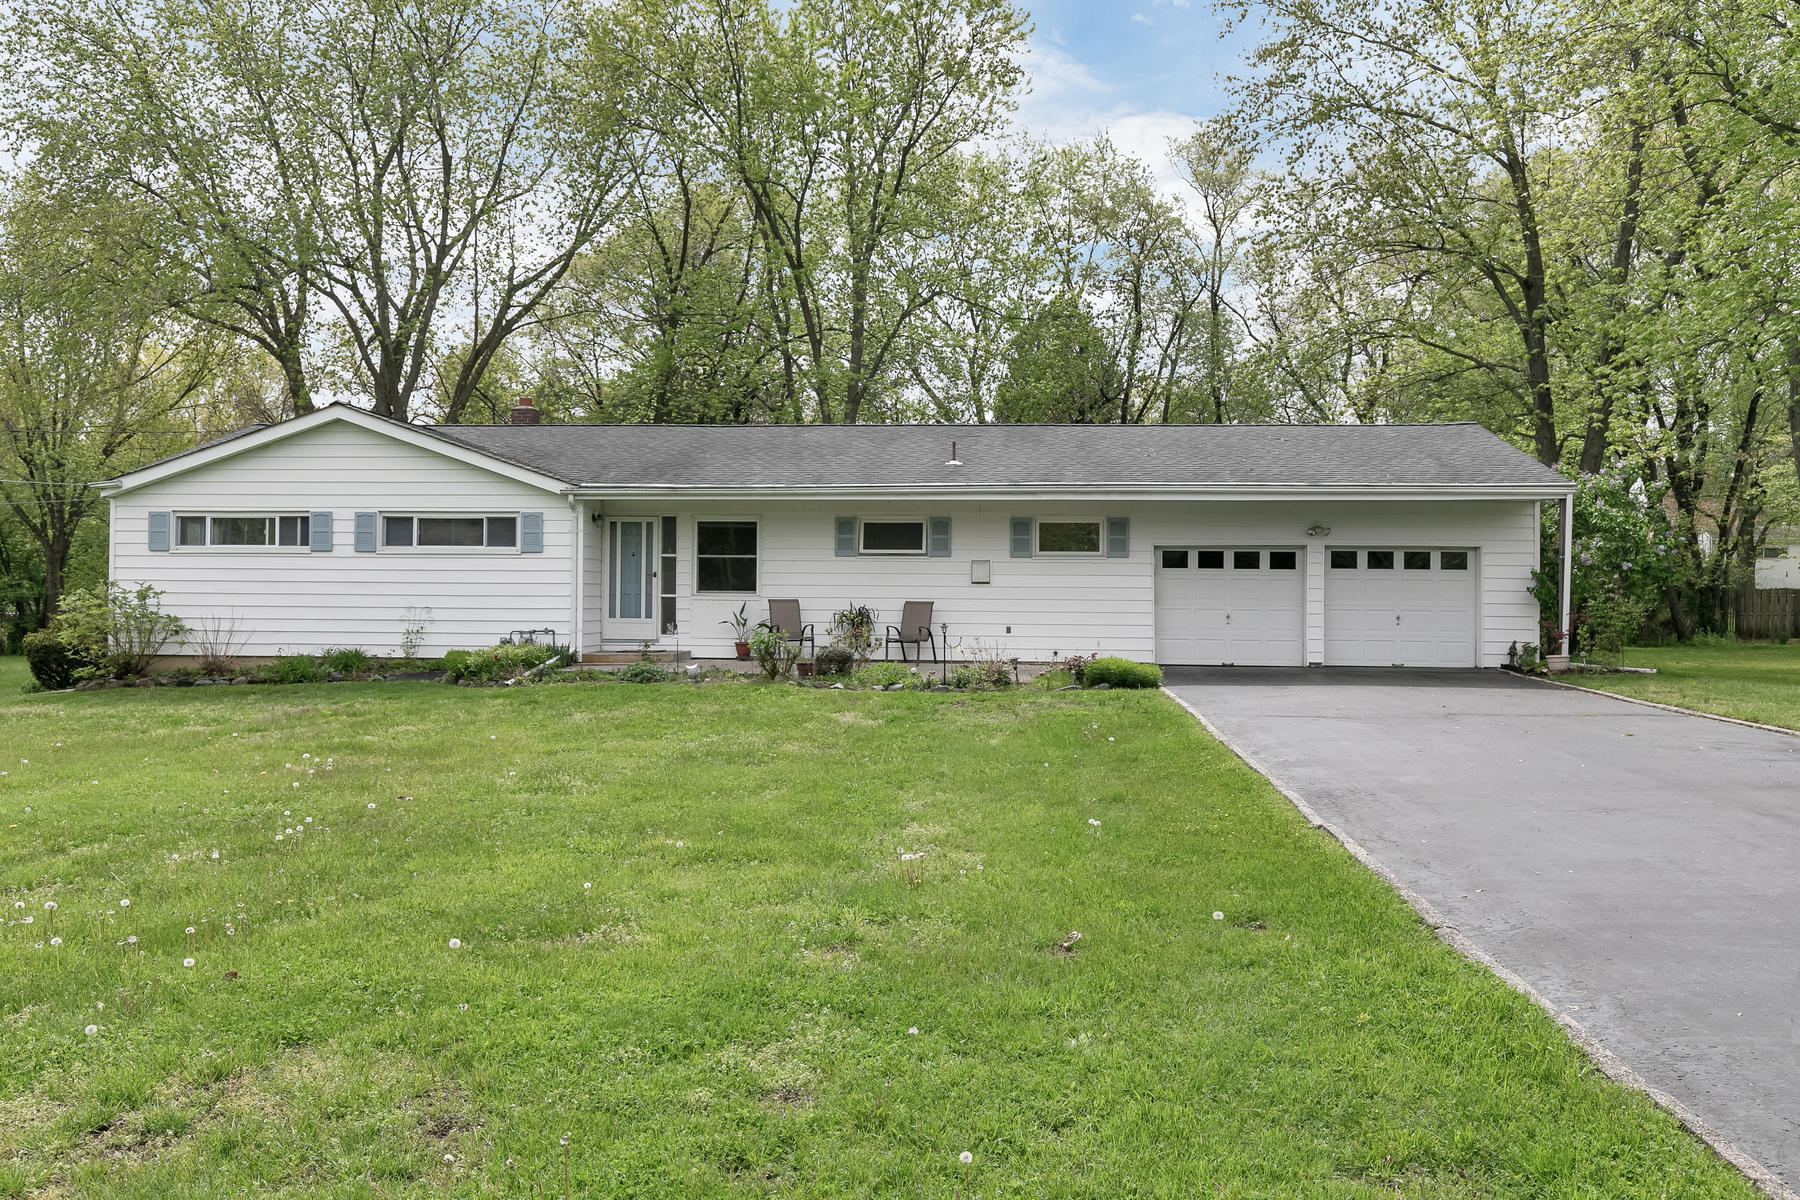 Single Family Home for Sale at Spacious Ranch 64 Thayer Drive, Tinton Falls, New Jersey 07724 United States